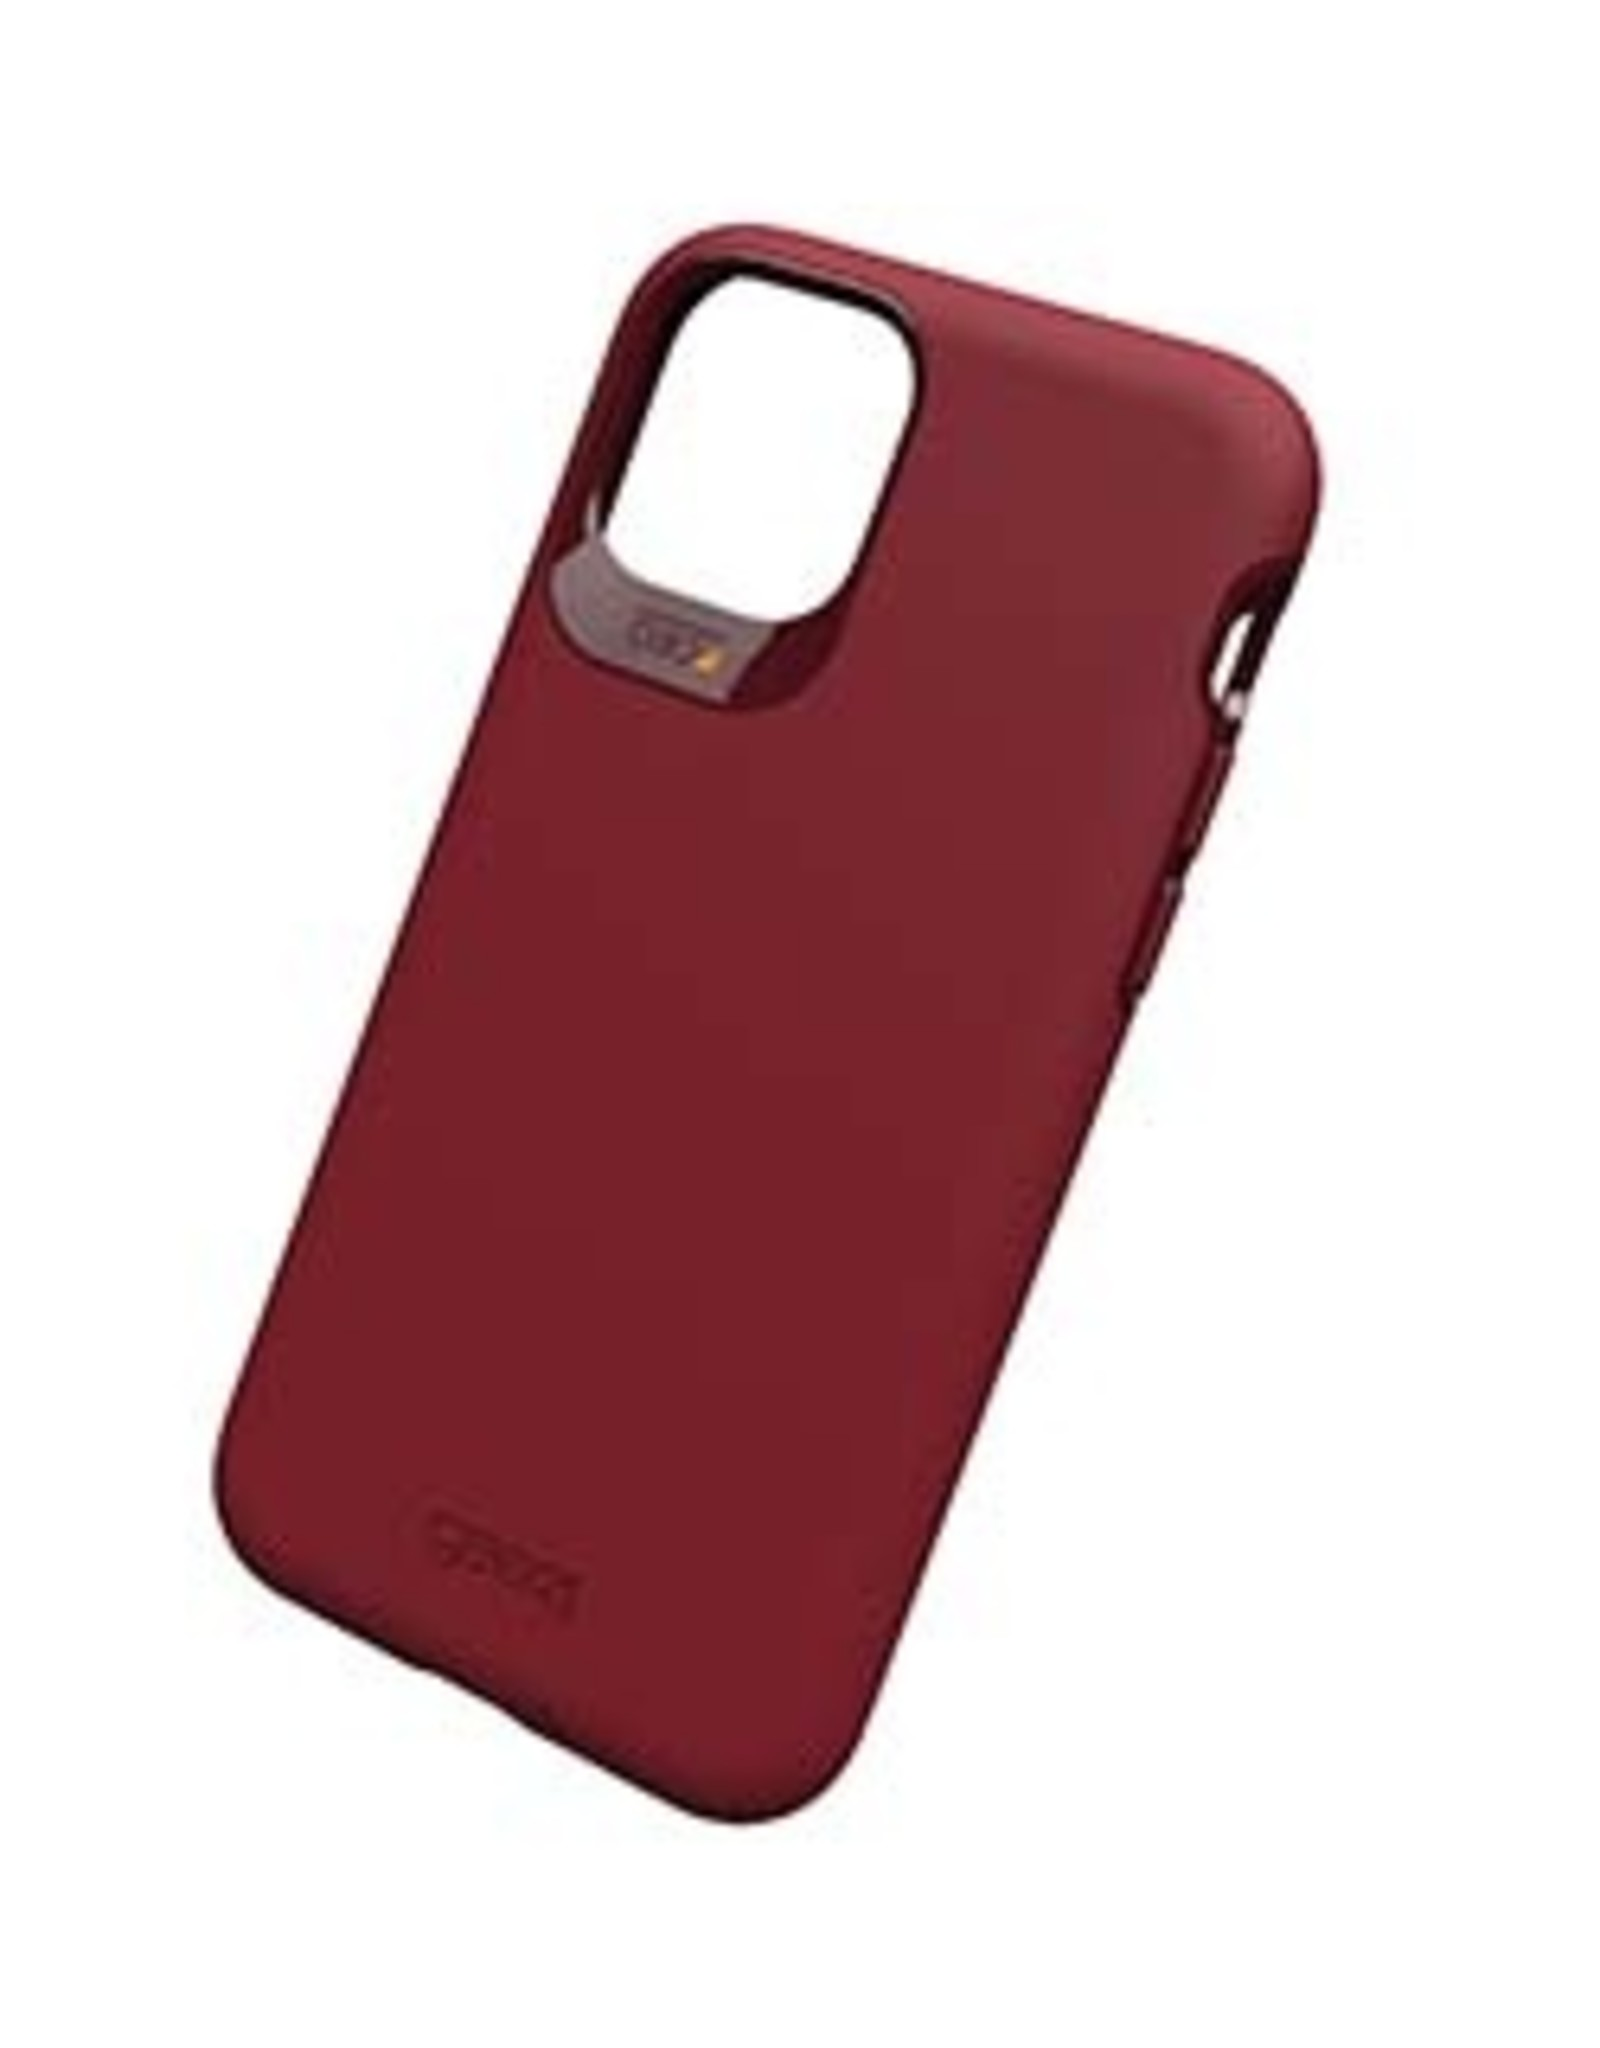 GEAR4 GEAR4  iPhone 11 Pro D3O Red (Wine) Holborn Case 15-04818